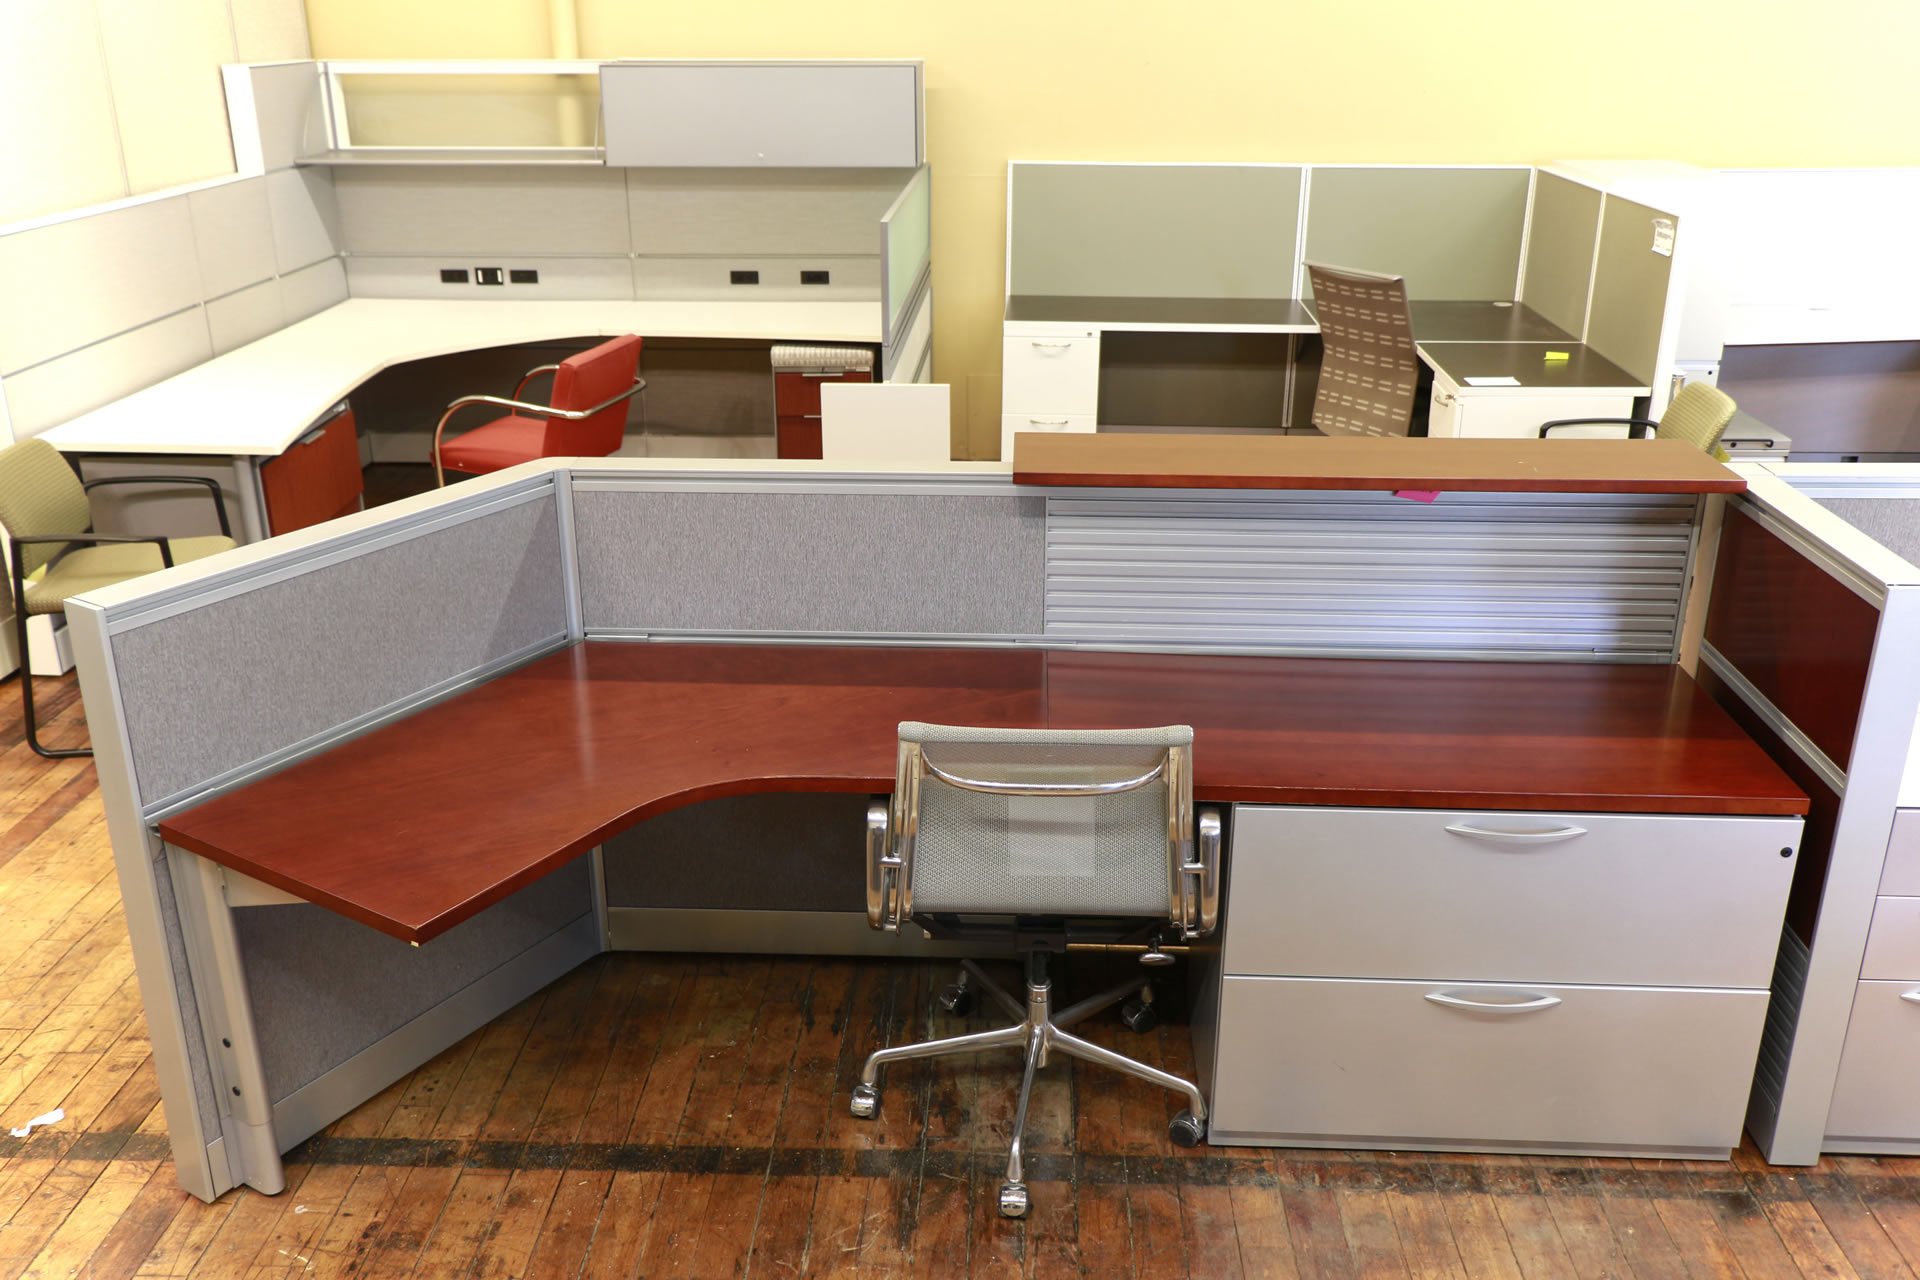 Kimball Cetra Cherry Reception Desk with Metallic Trim